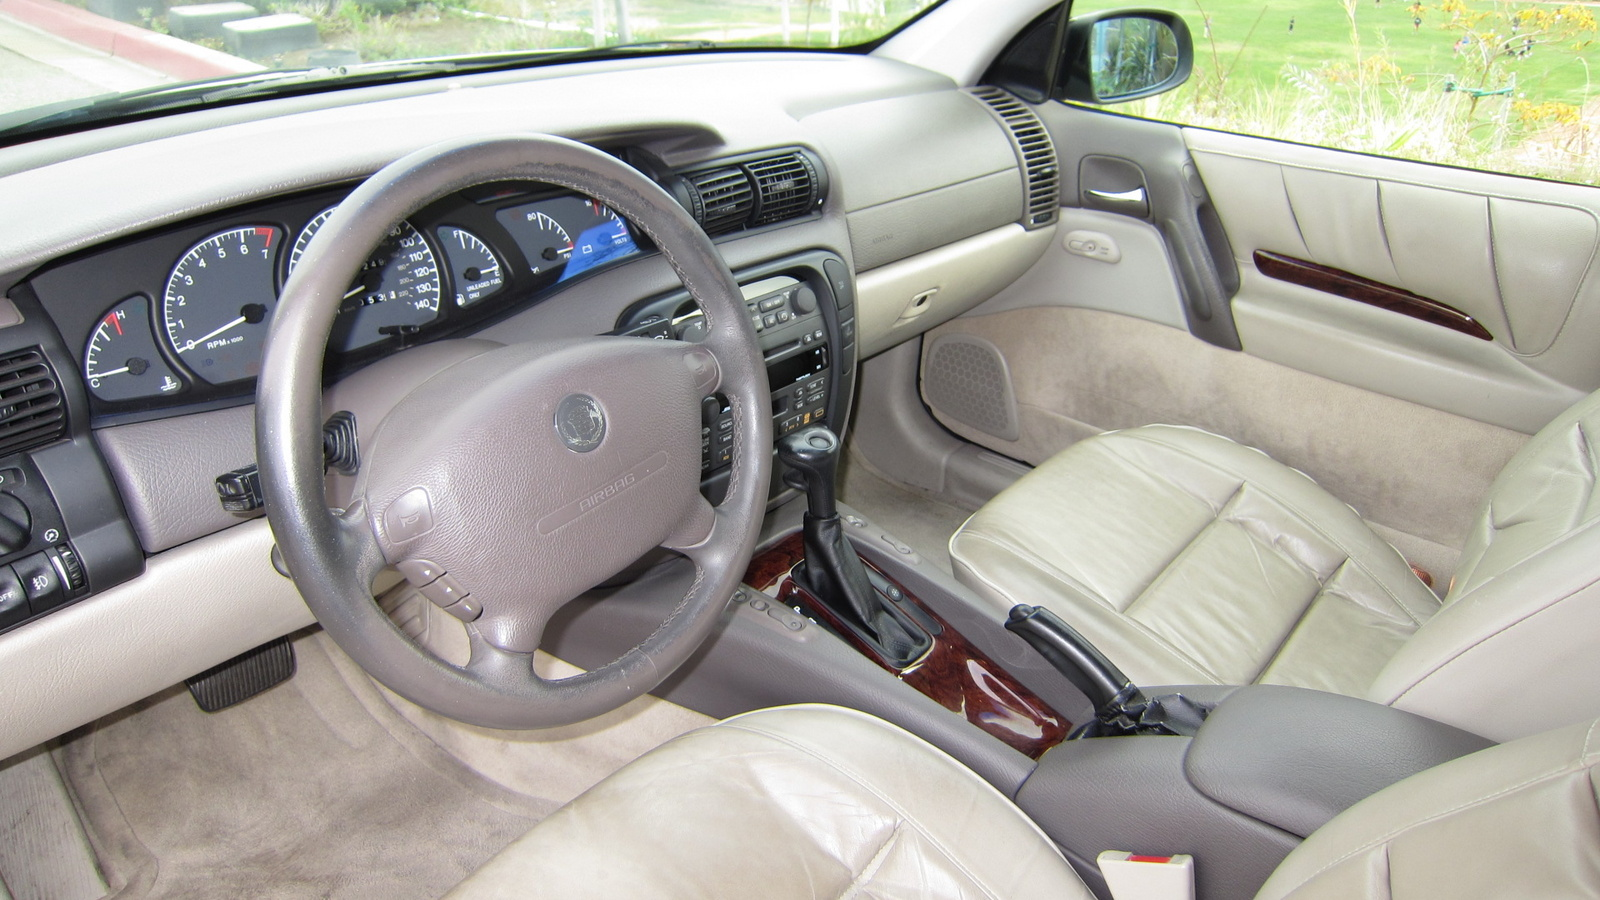 similiar cadillac catera seats keywords picture of 1998 cadillac catera 4 dr std sedan interior